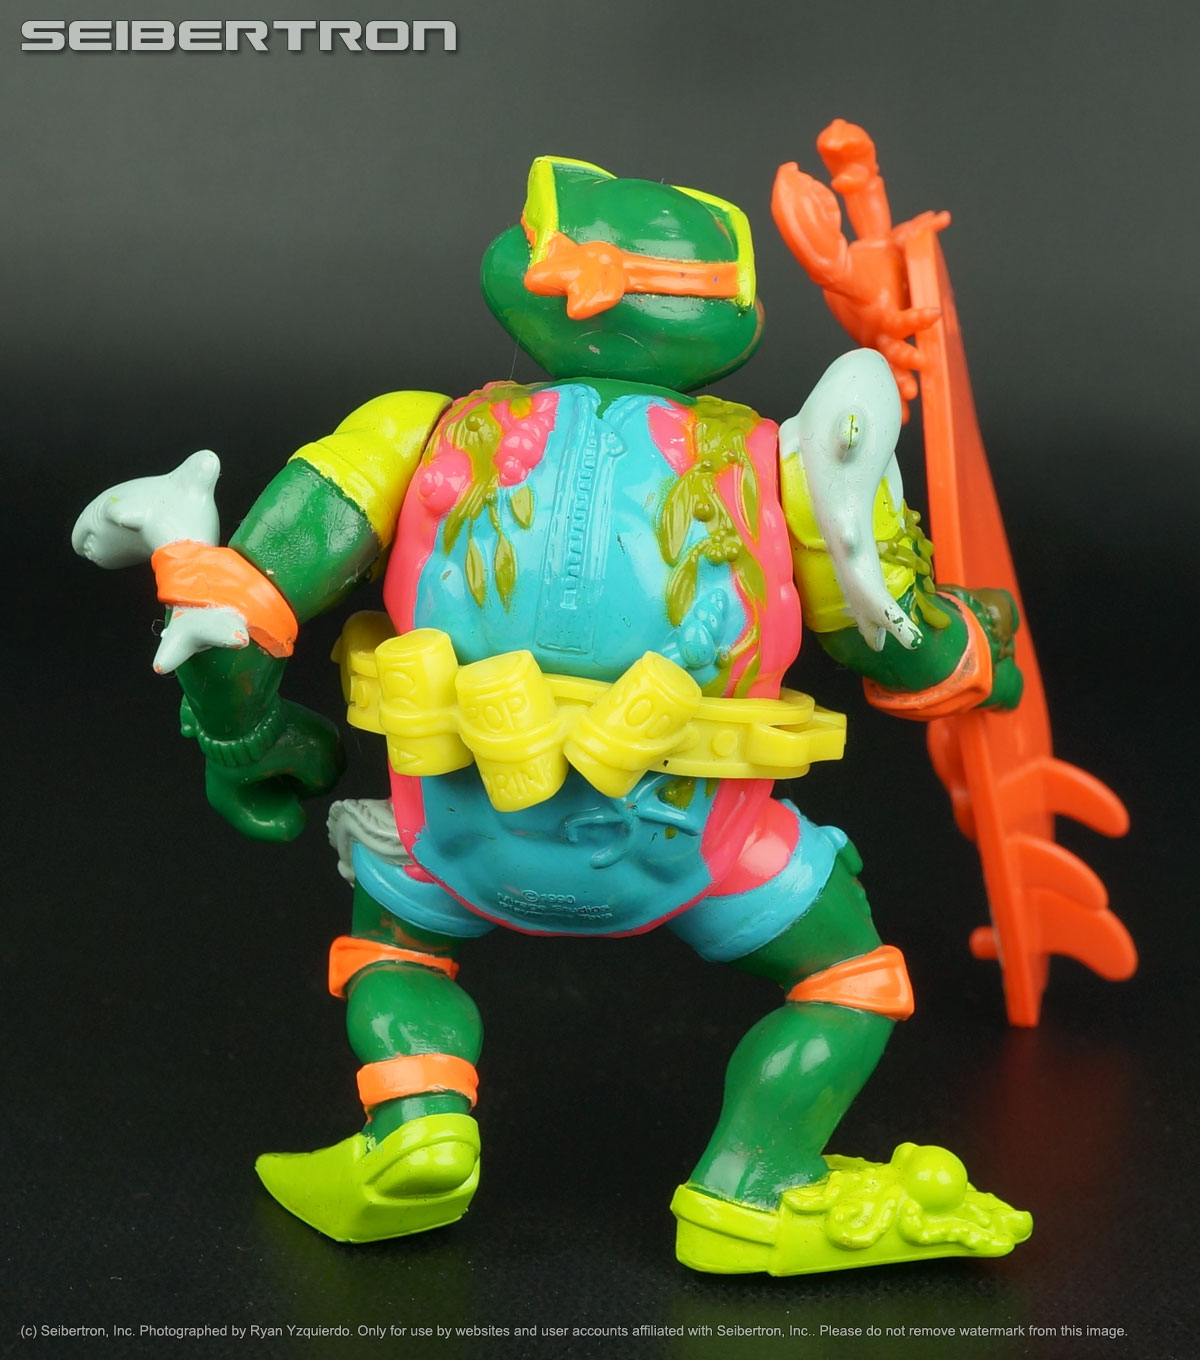 Teenage Mutant Ninja Turtles, Masters of the Universe, Transformers, Comic Books, DVDs and more listings from Seibertron.com: MIKE SEWER SURFER Teenage Mutant Ninja Turtles 100% complete vintage 1989 TMNT